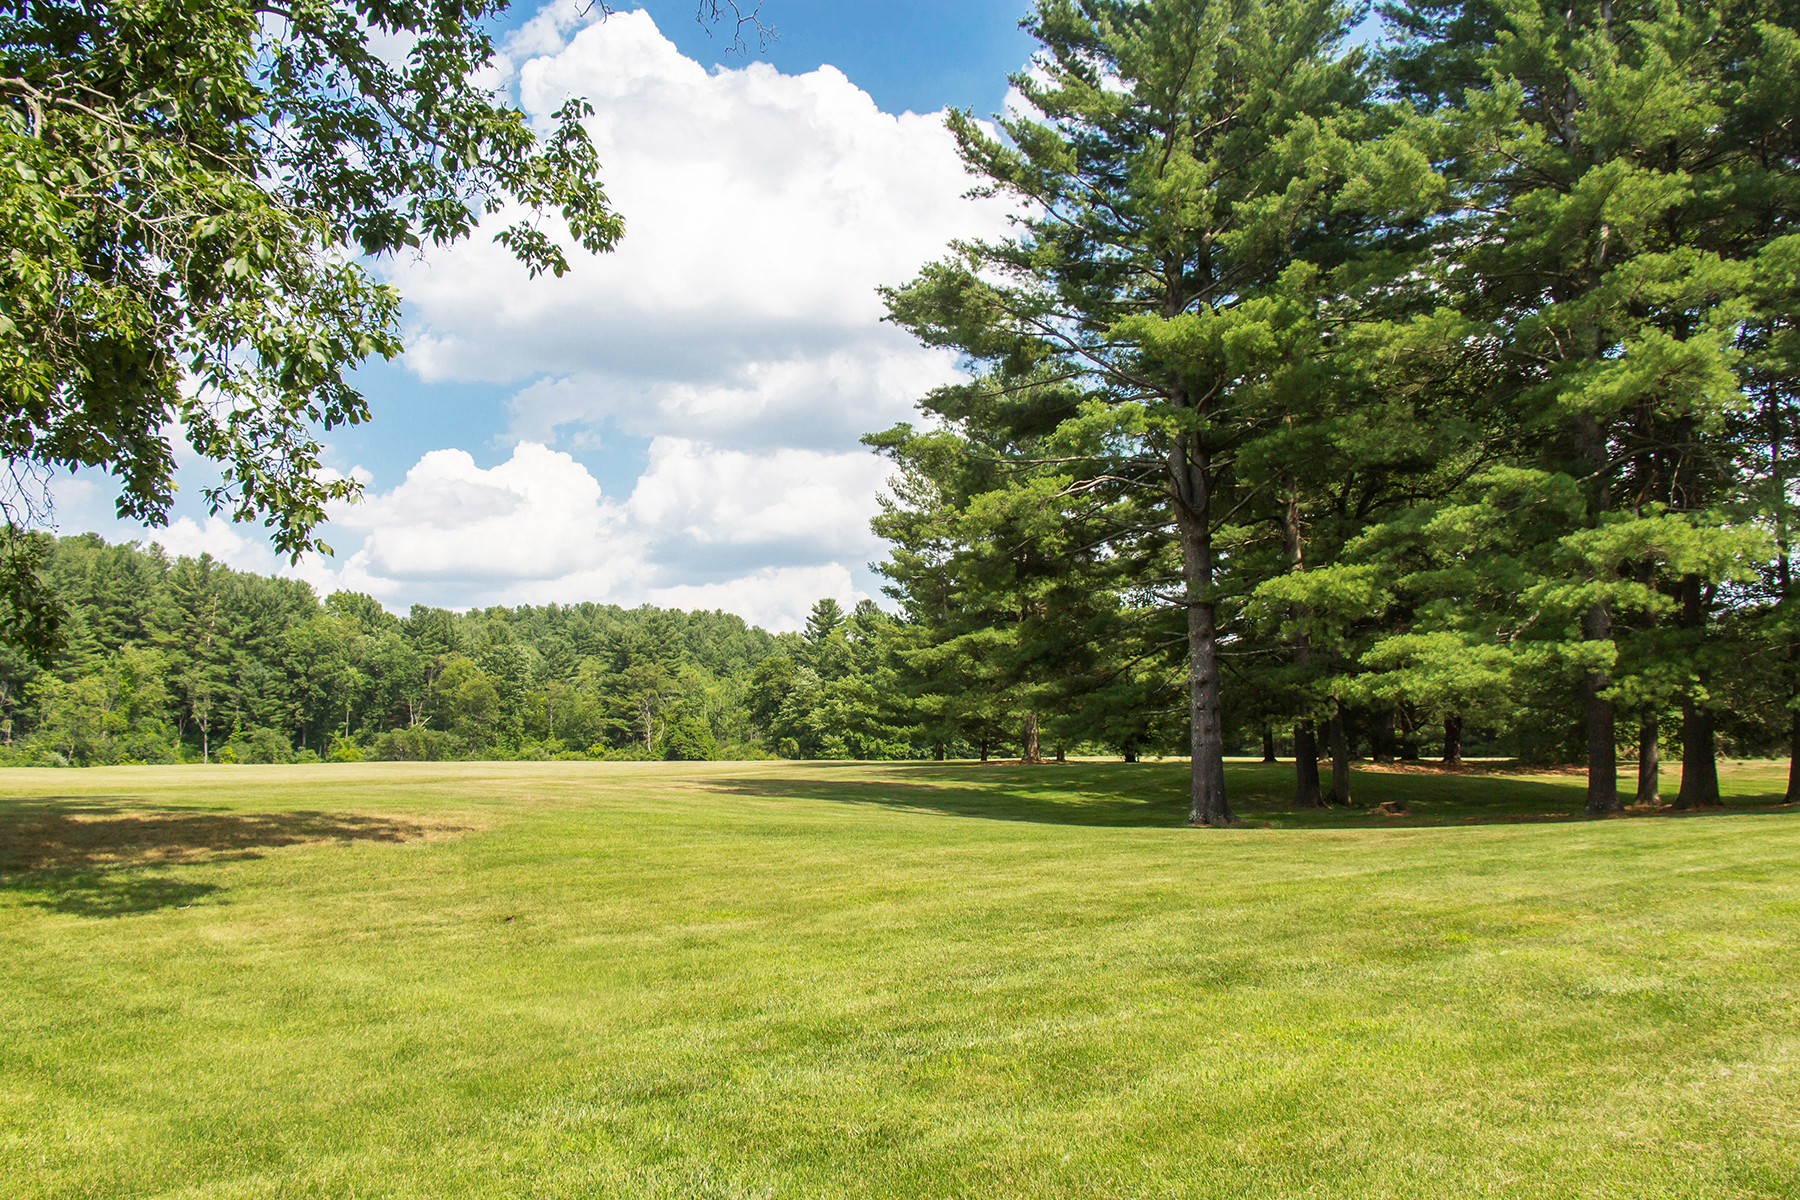 Land for Sale at Nott Rd 9432 Nott Rd Guilderland, New York 12084 United States